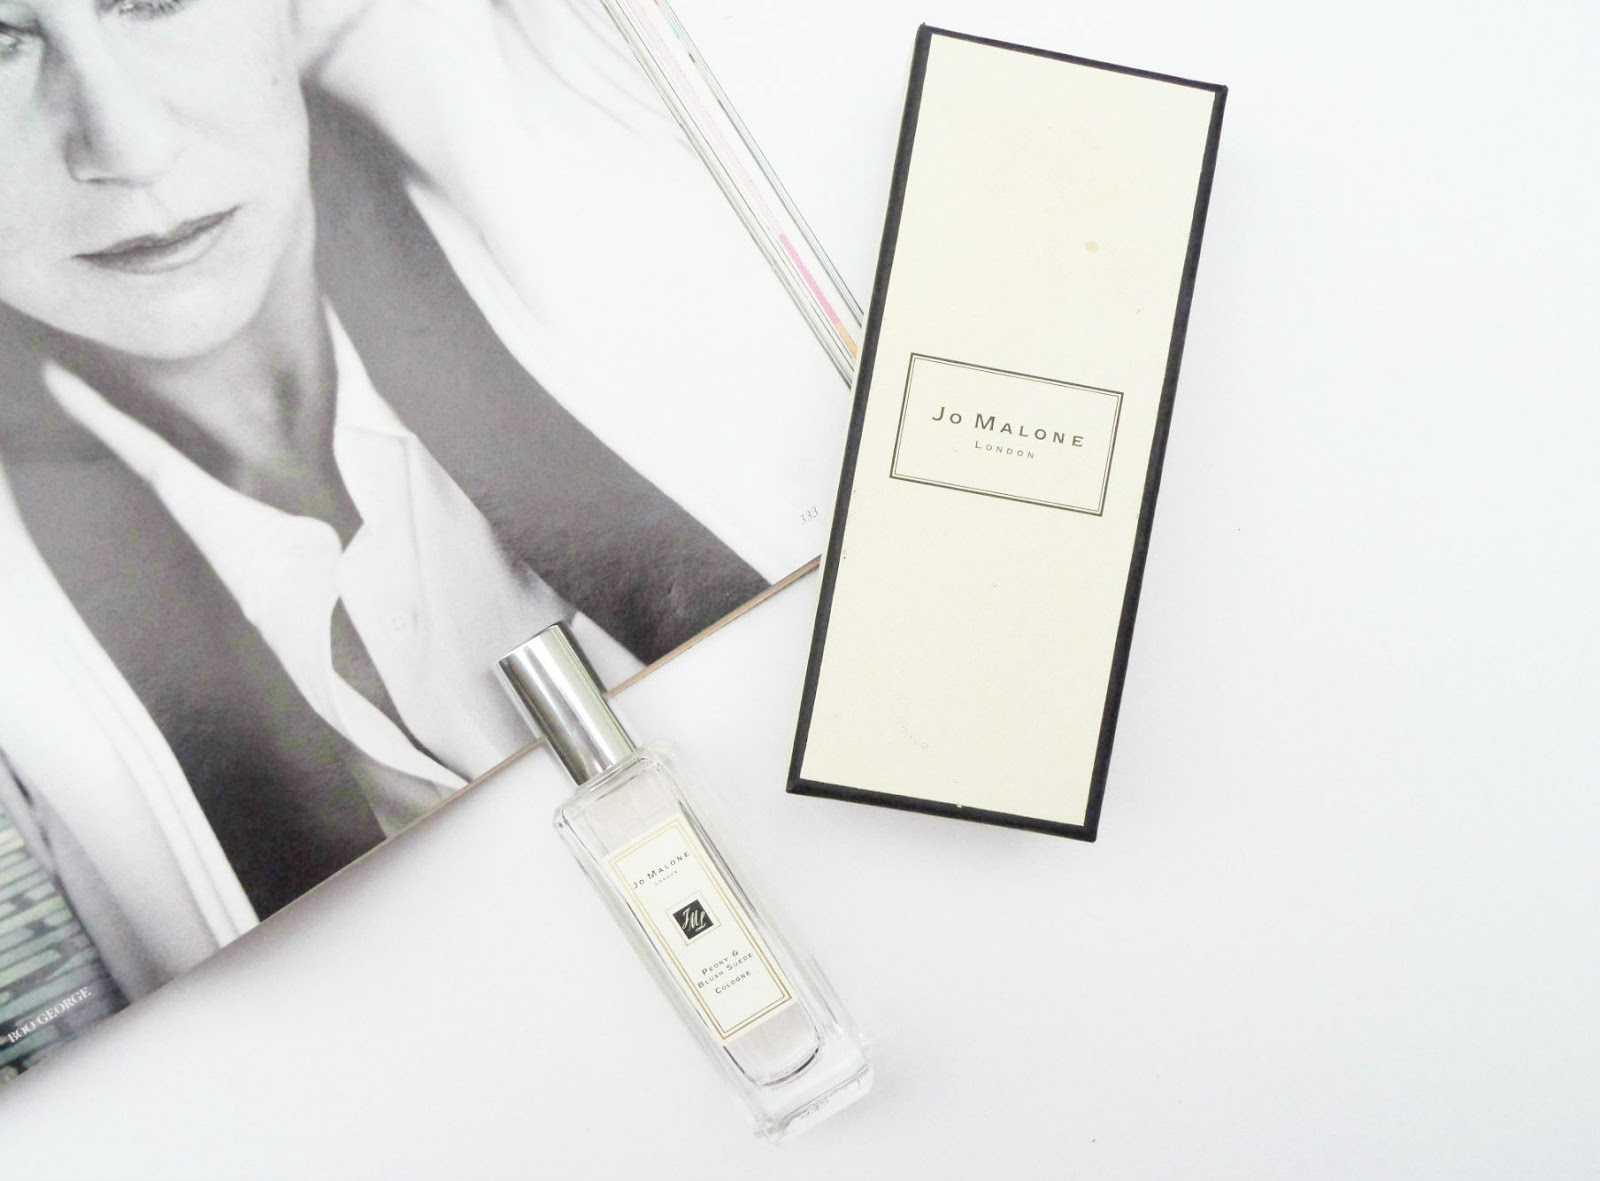 Jo Malone Peony and Suede Blush Cologne